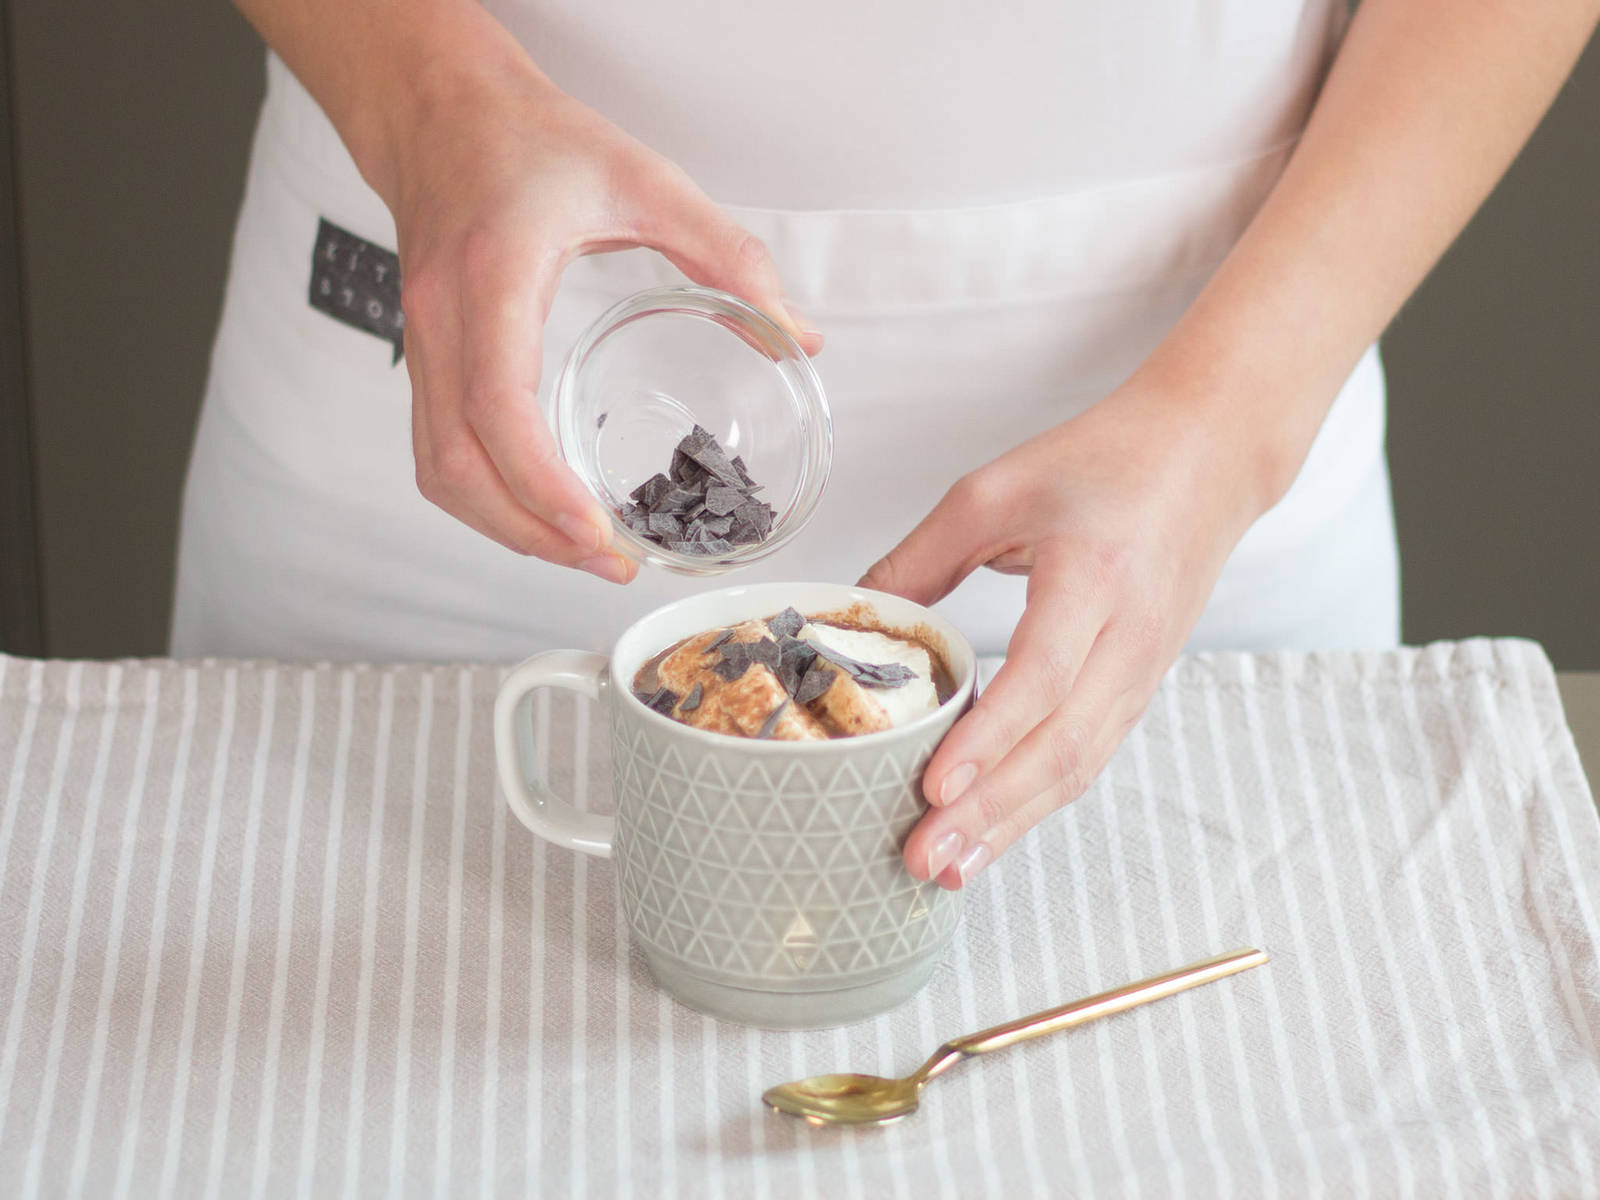 Remove star anise and cloves from hot chocolate. Pour into cups and top off with a dollop of whipped cream. Sprinkle with chocolate shavings and enjoy!